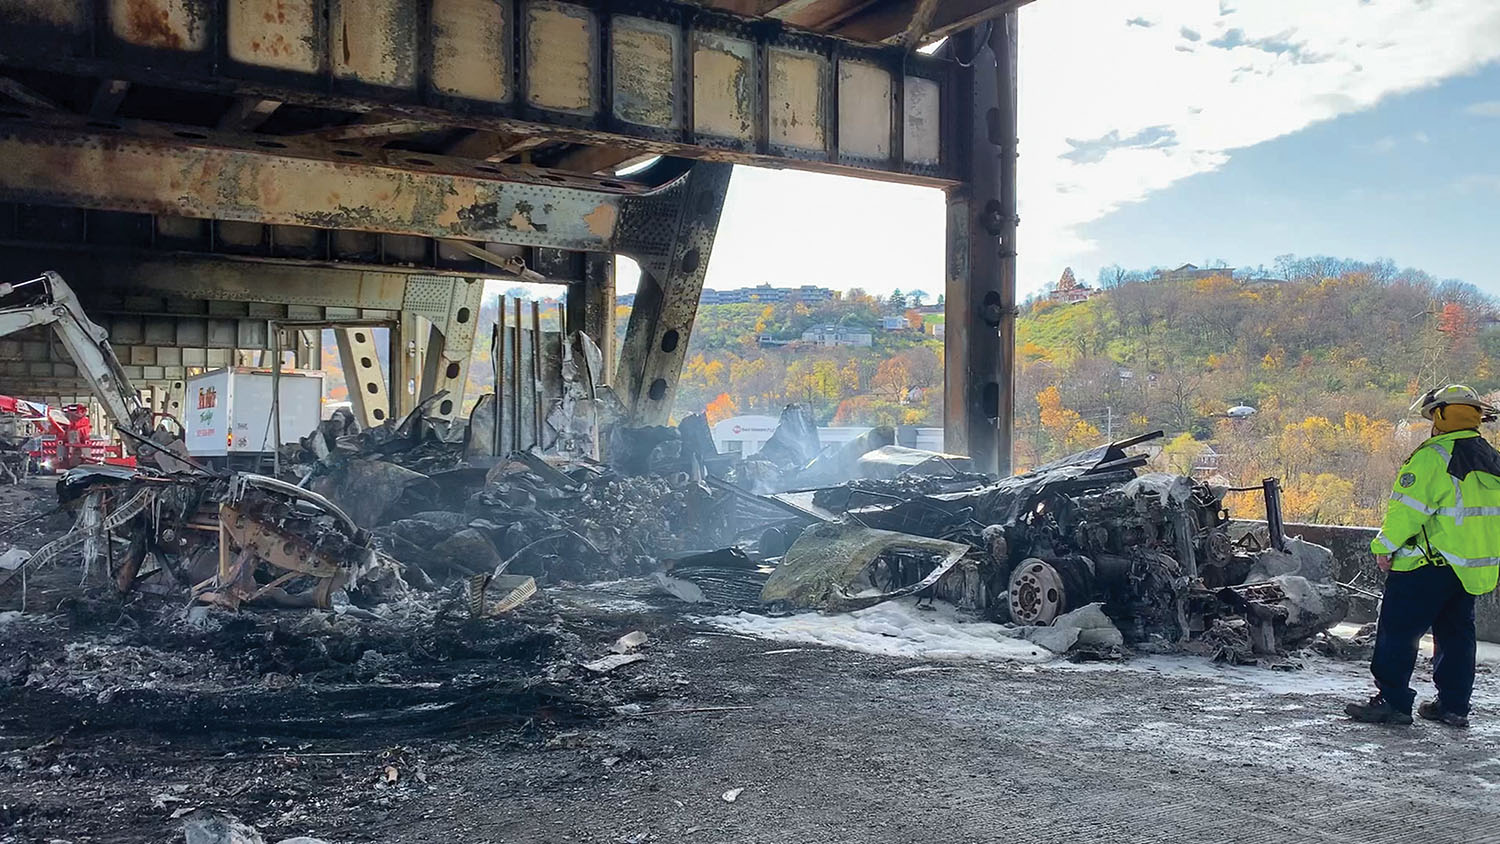 Cincinnati Feels Impact Of Bridge Closure After Fiery Wreck